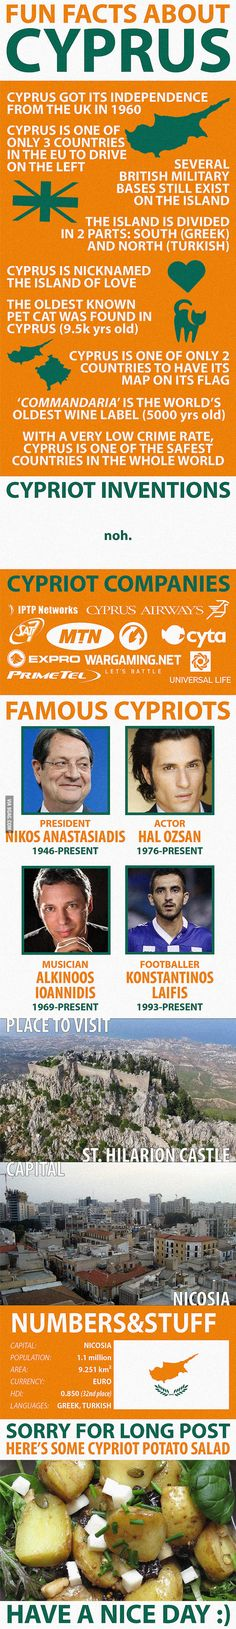 Fun facts about Cyprus